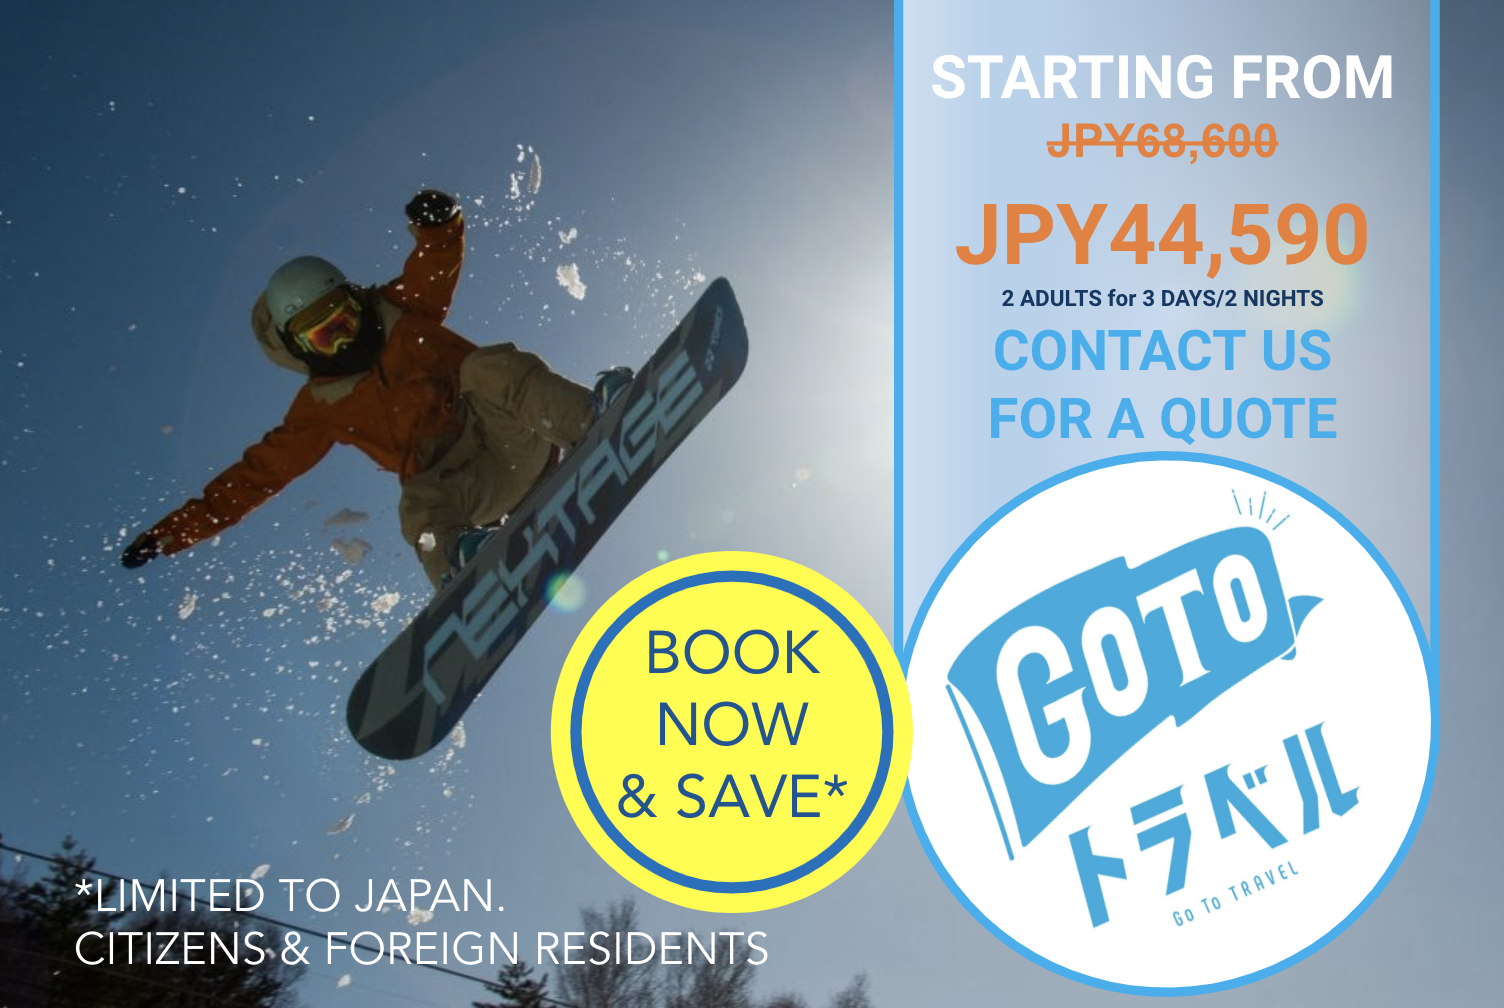 Go To Deals: Ski & Snowboard Packages in Nagano 2020/21